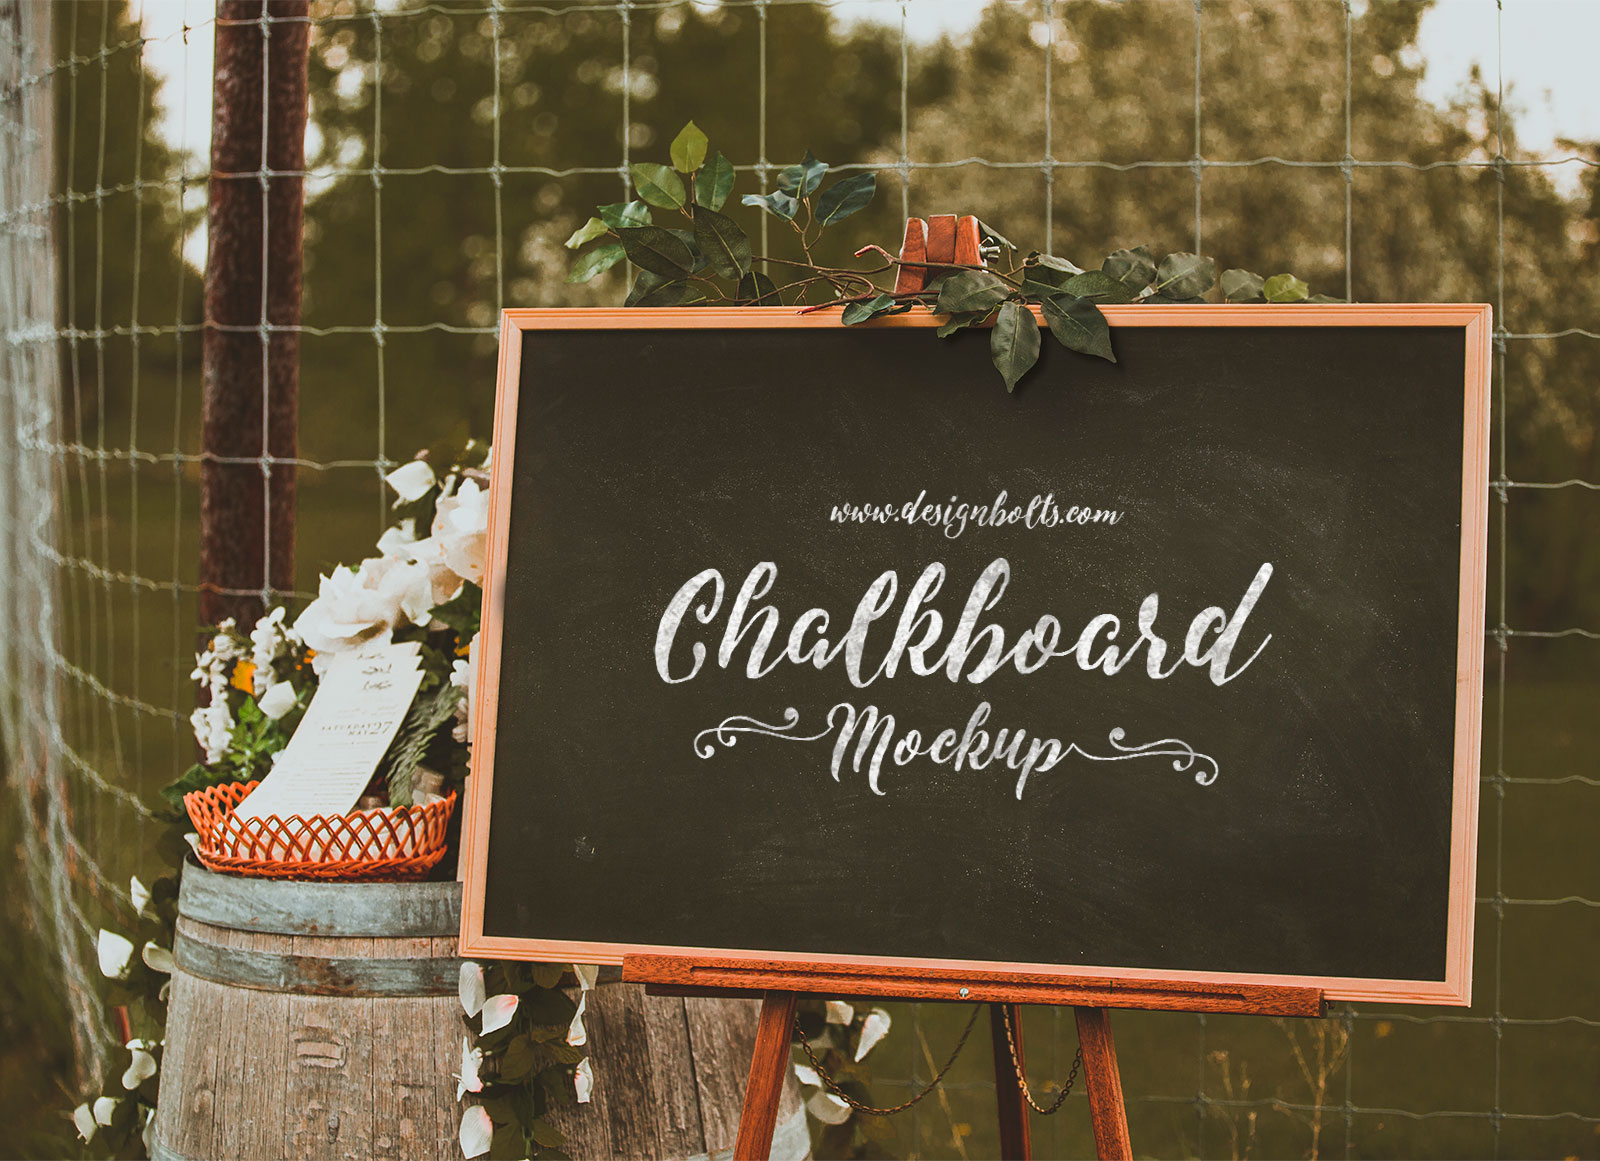 Free-Chalkboard-Mockup-PSD-for-Lettering-&-typography